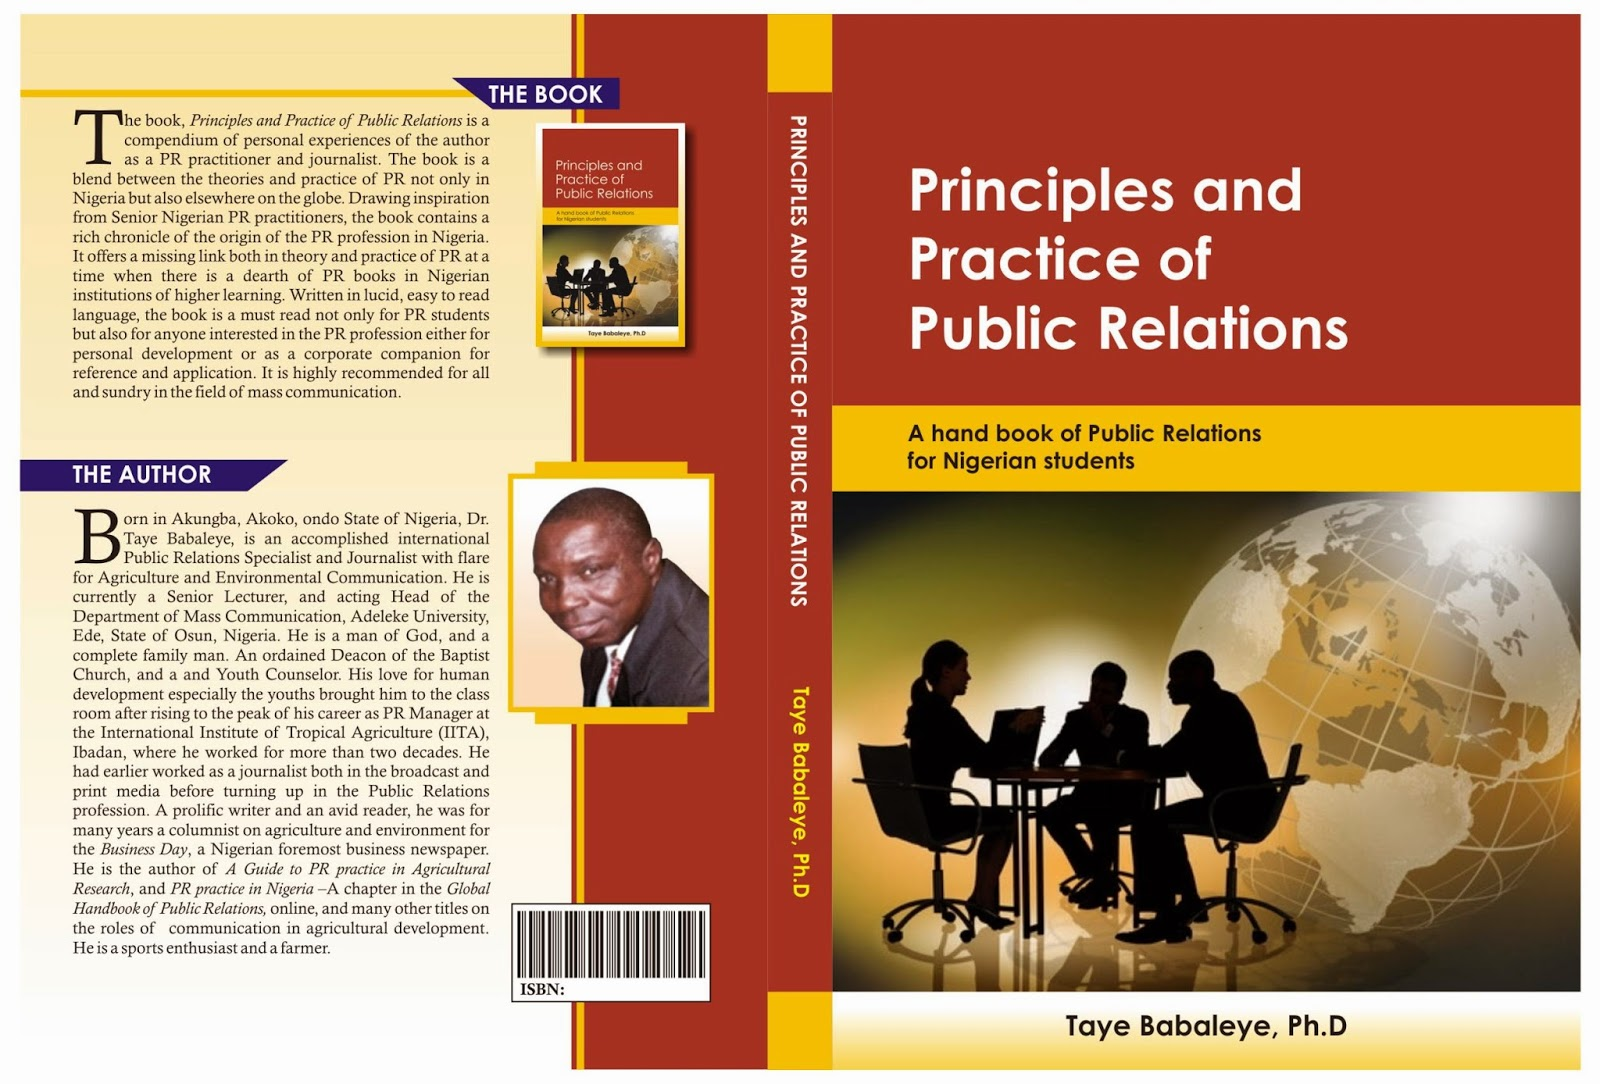 chapter 4 principles of public relations Study public relations: strategies and tactics, study edition (9th edition) discussion and chapter questions and find public relations: strategies and tactics, study edition (9th edition) study guide questions and answers.